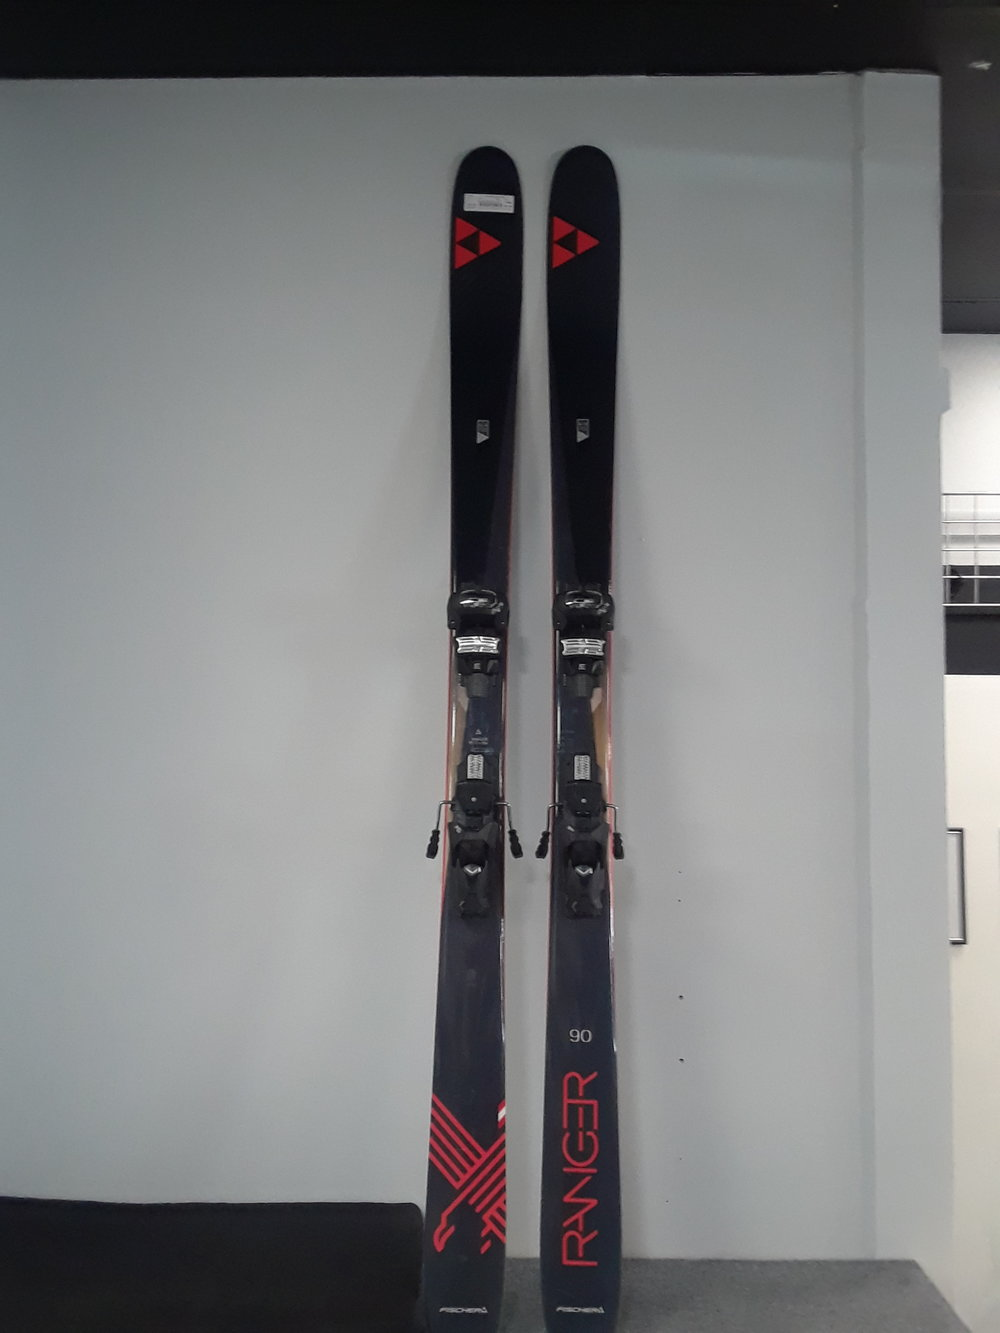 186 Fischer Ranger 90Ti W/Attack 13 bindings Our Price - $417 MSRP - $650